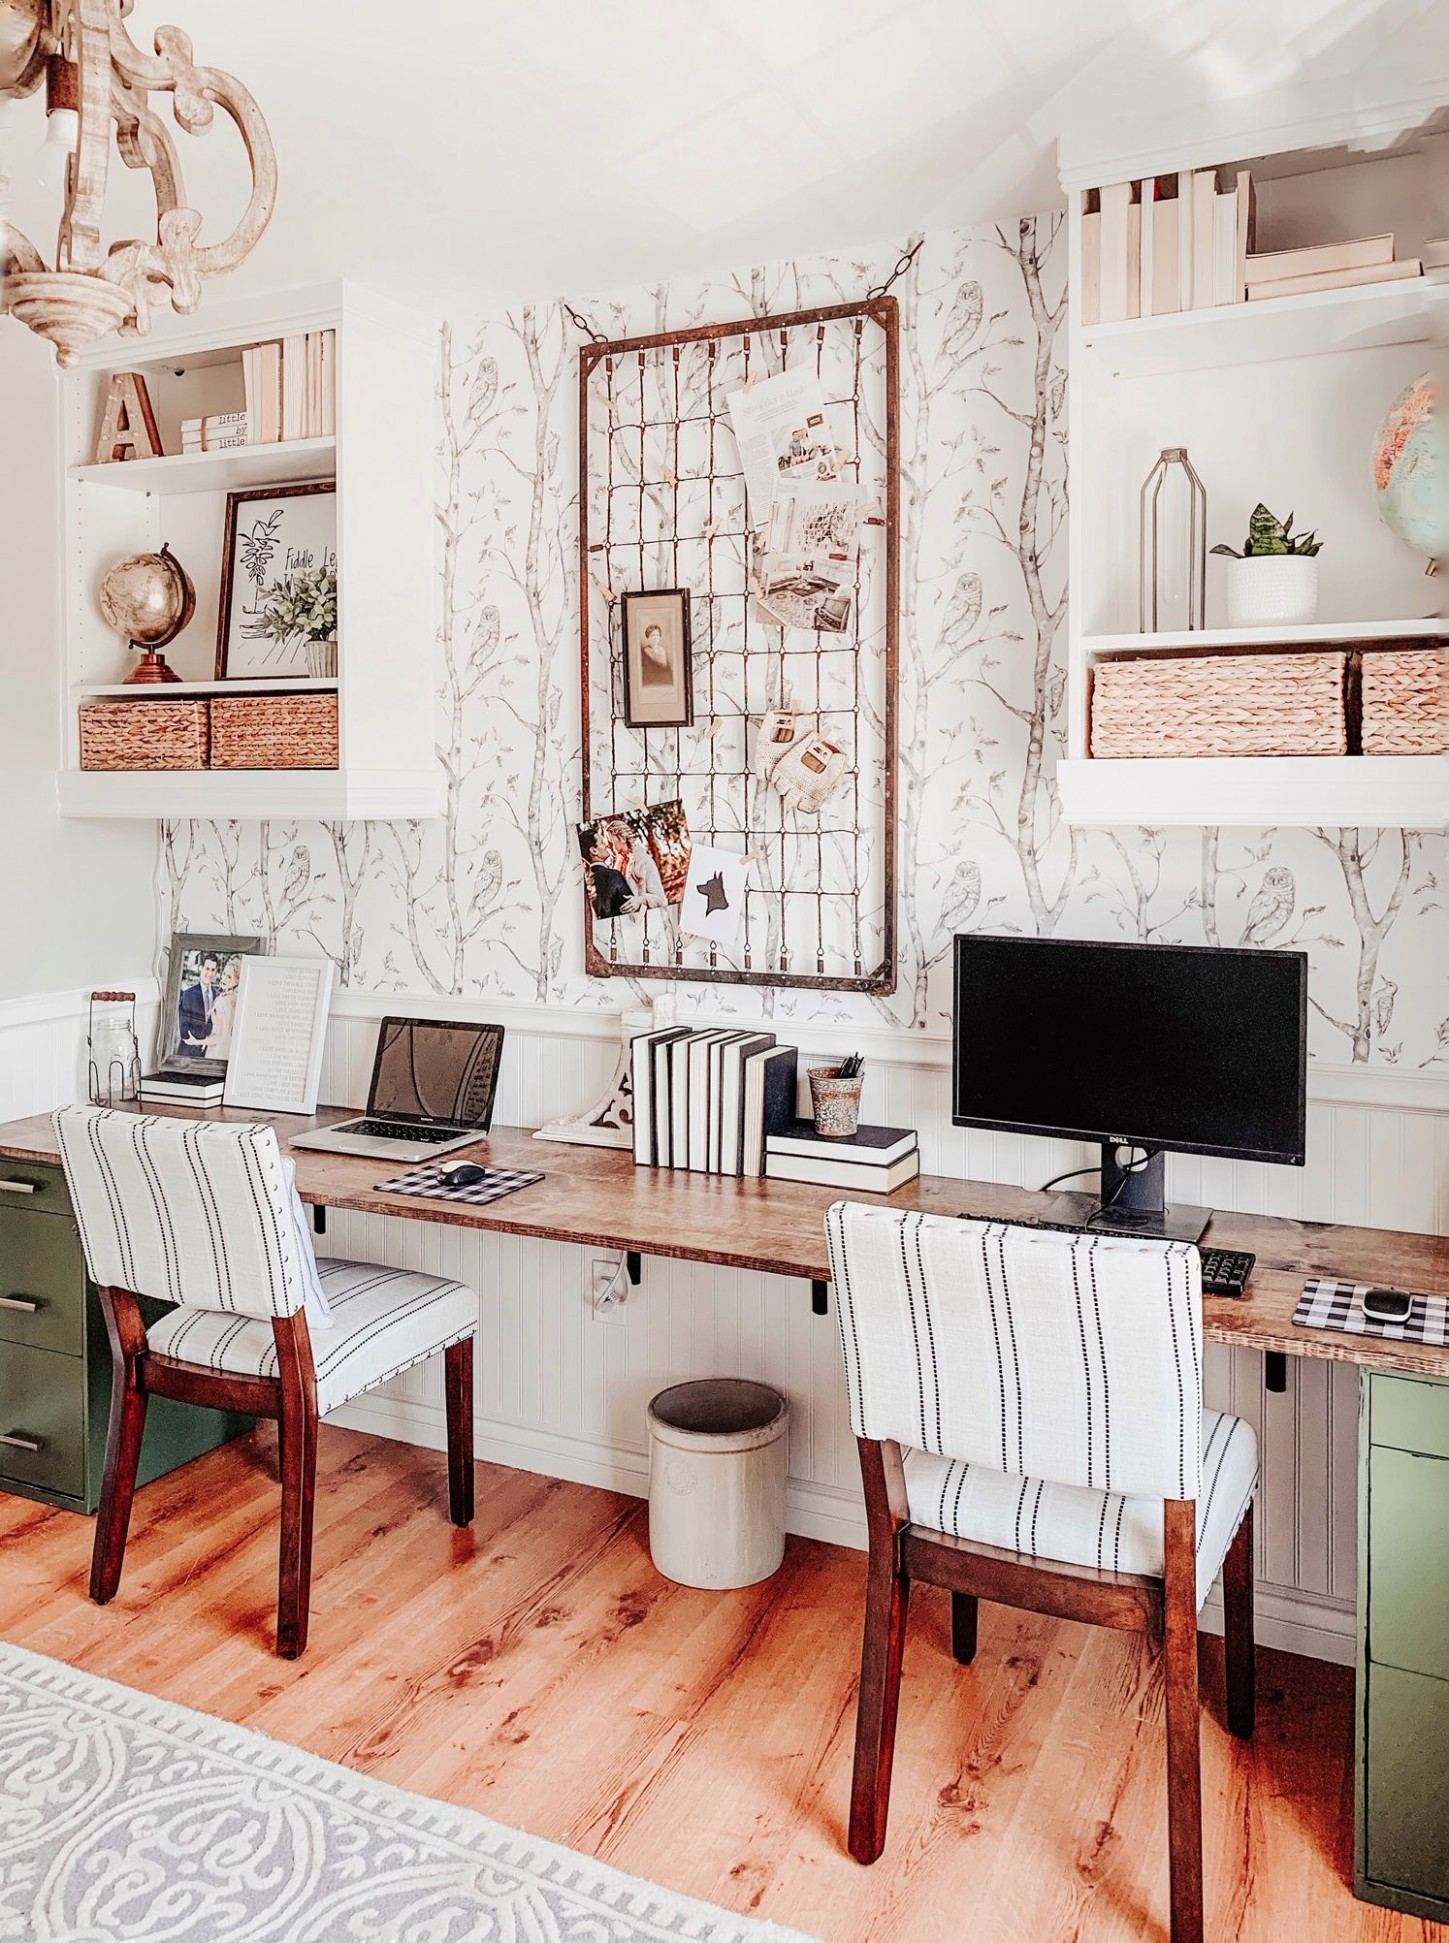 12 DIY Home Office Decor Ideas - Best Home Office Decor Projects - Home Office Accessories Ideas